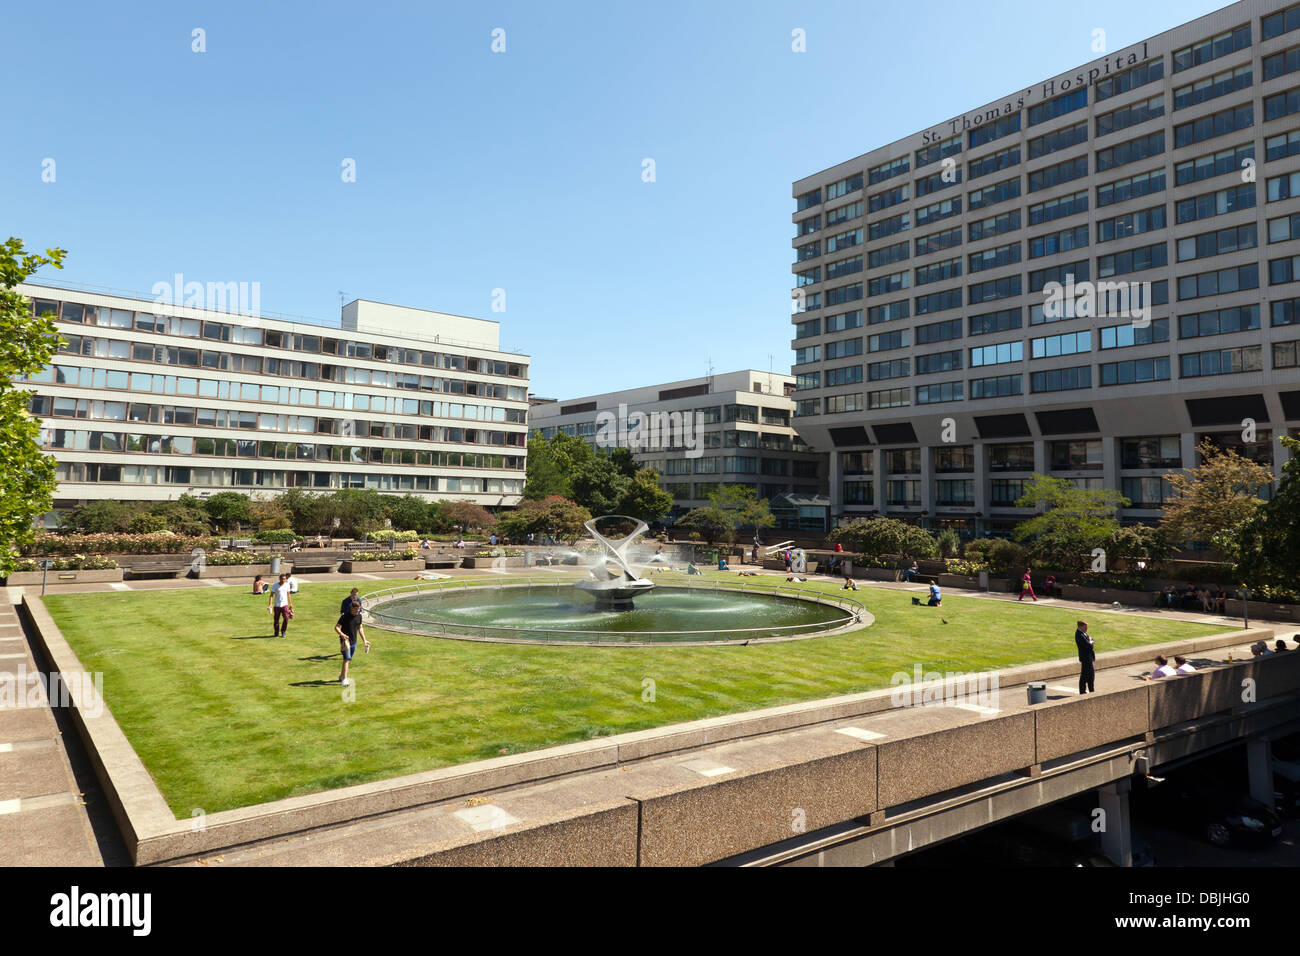 View of St Thomas'  Hospital and the Gabo Fountain Garden, Lambeth, London - Stock Image